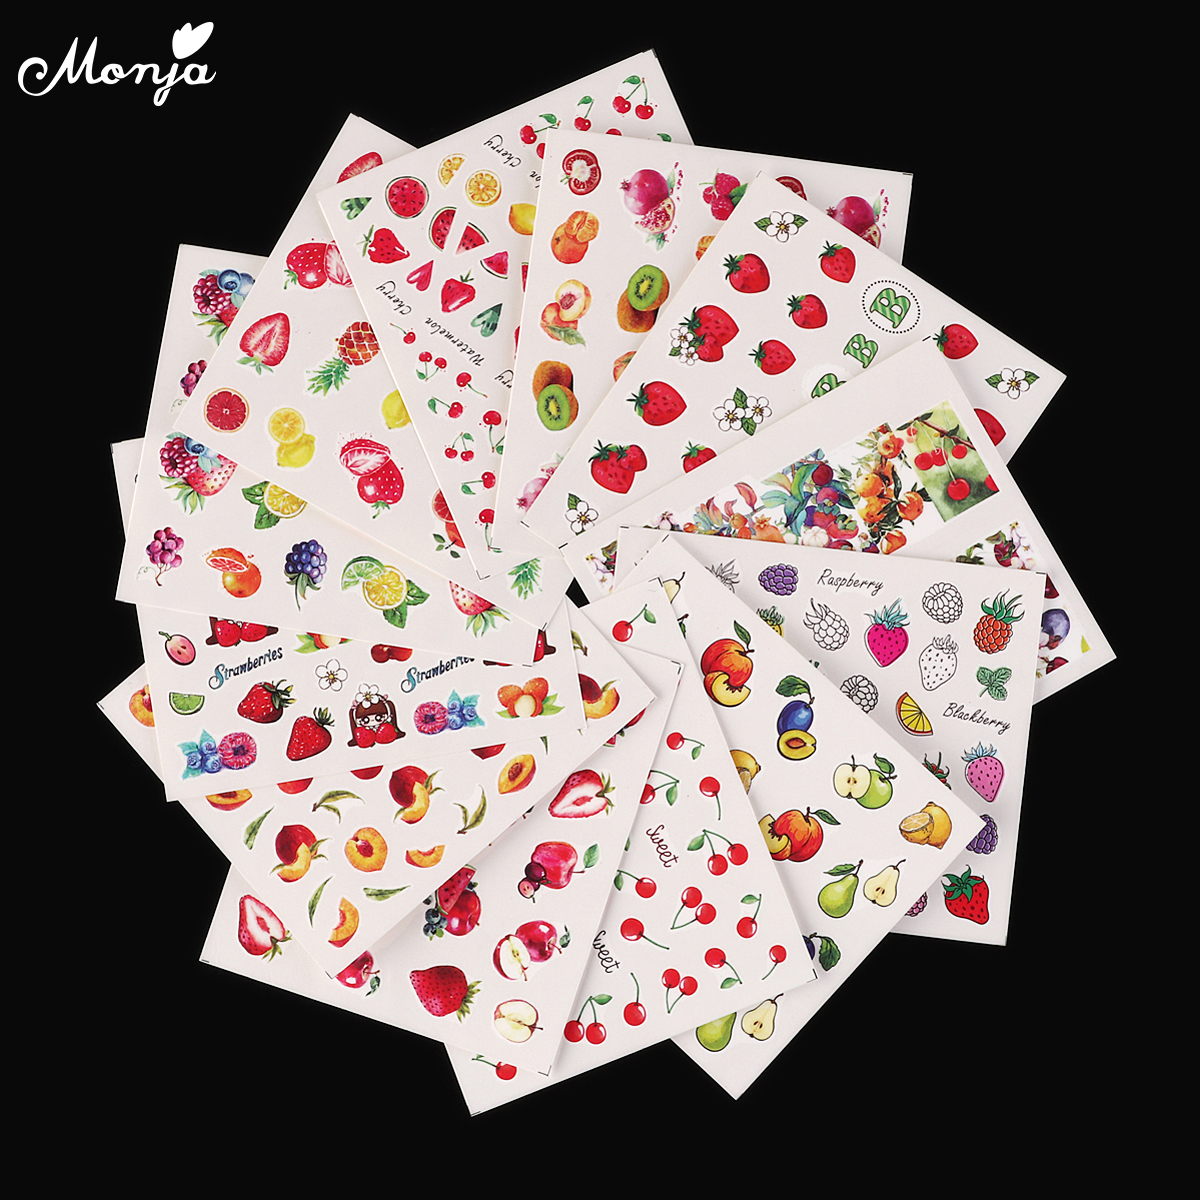 Monja 12 Sheets Nail Art Fruit Series Strawberry Apple Pattern Water Transfer Decals Stickers 3D